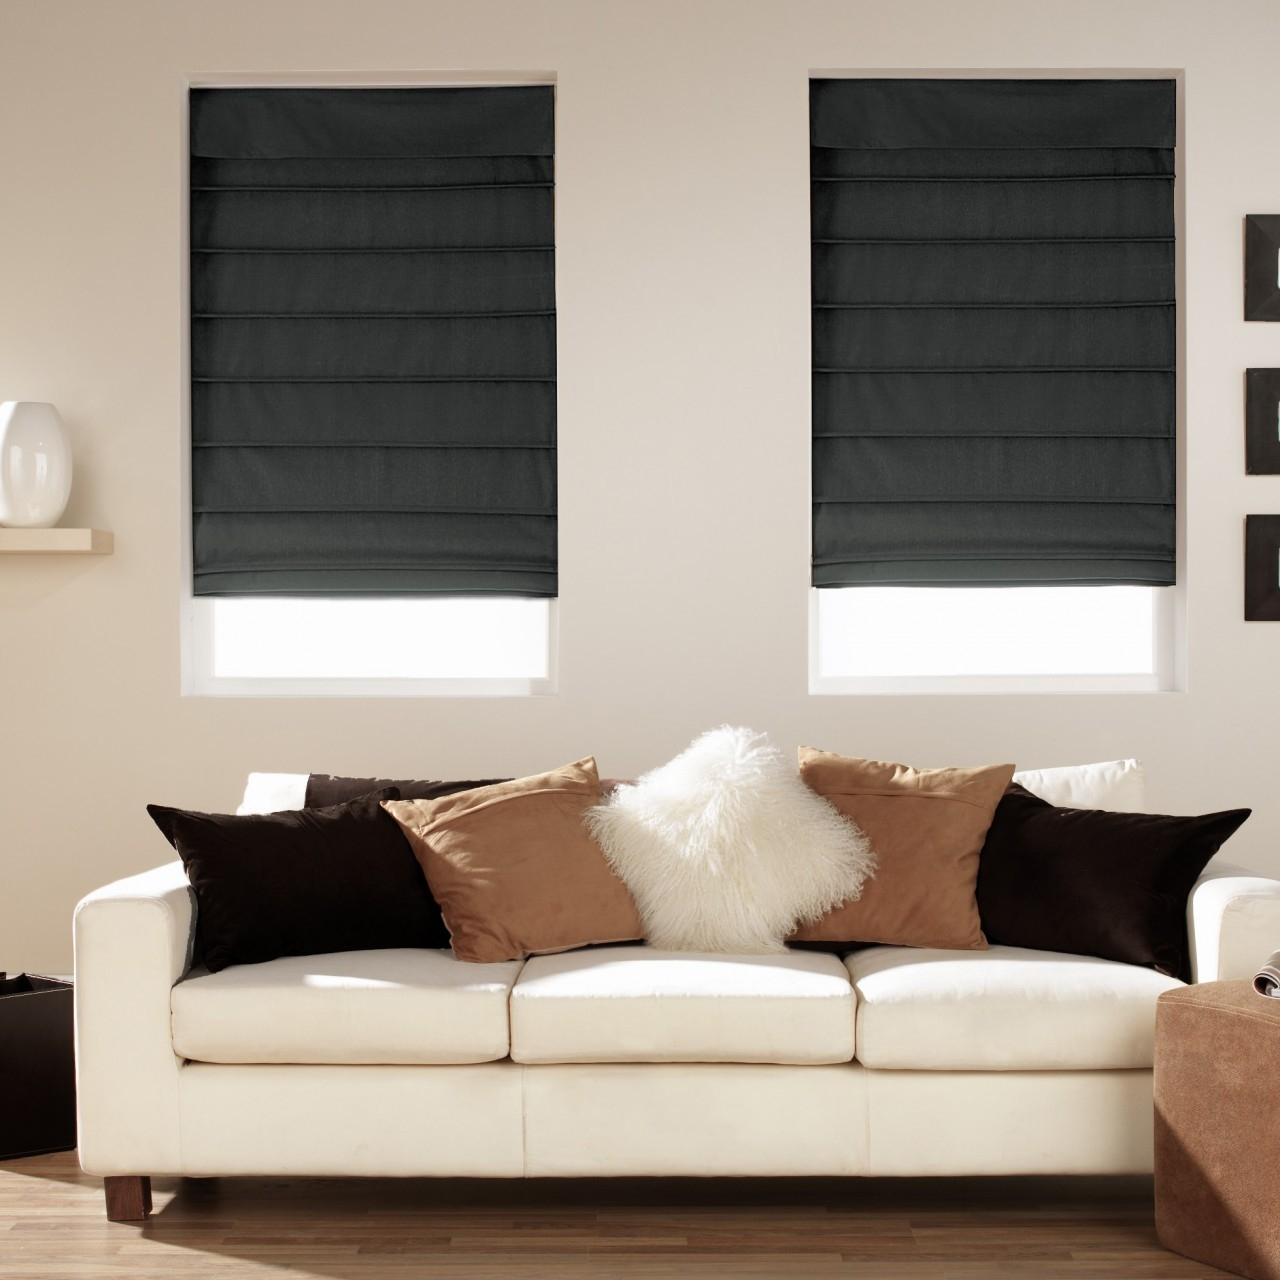 Ver 1 000 Bilder Om Blinds And Curtains P Pinterestfranska Regarding Thermal Lined Roman Shades (Image 15 of 15)